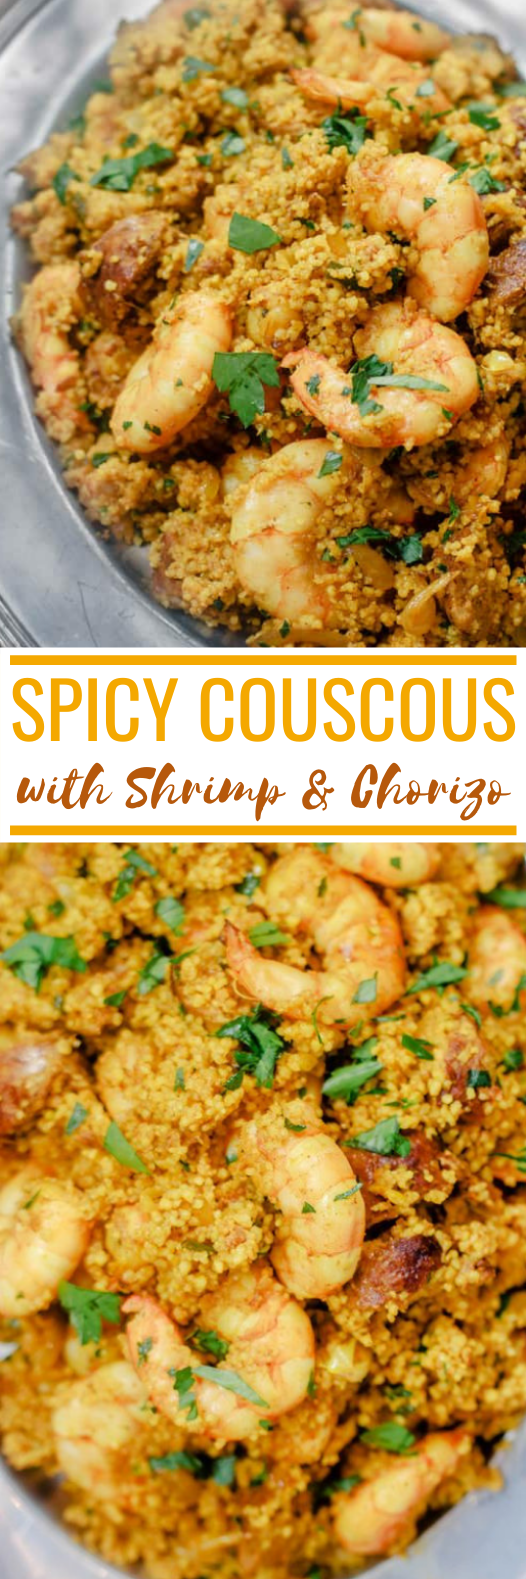 Spicy Couscous with Shrimp and Chorizo #seafood #shrimp #dinner #sausage #lunch